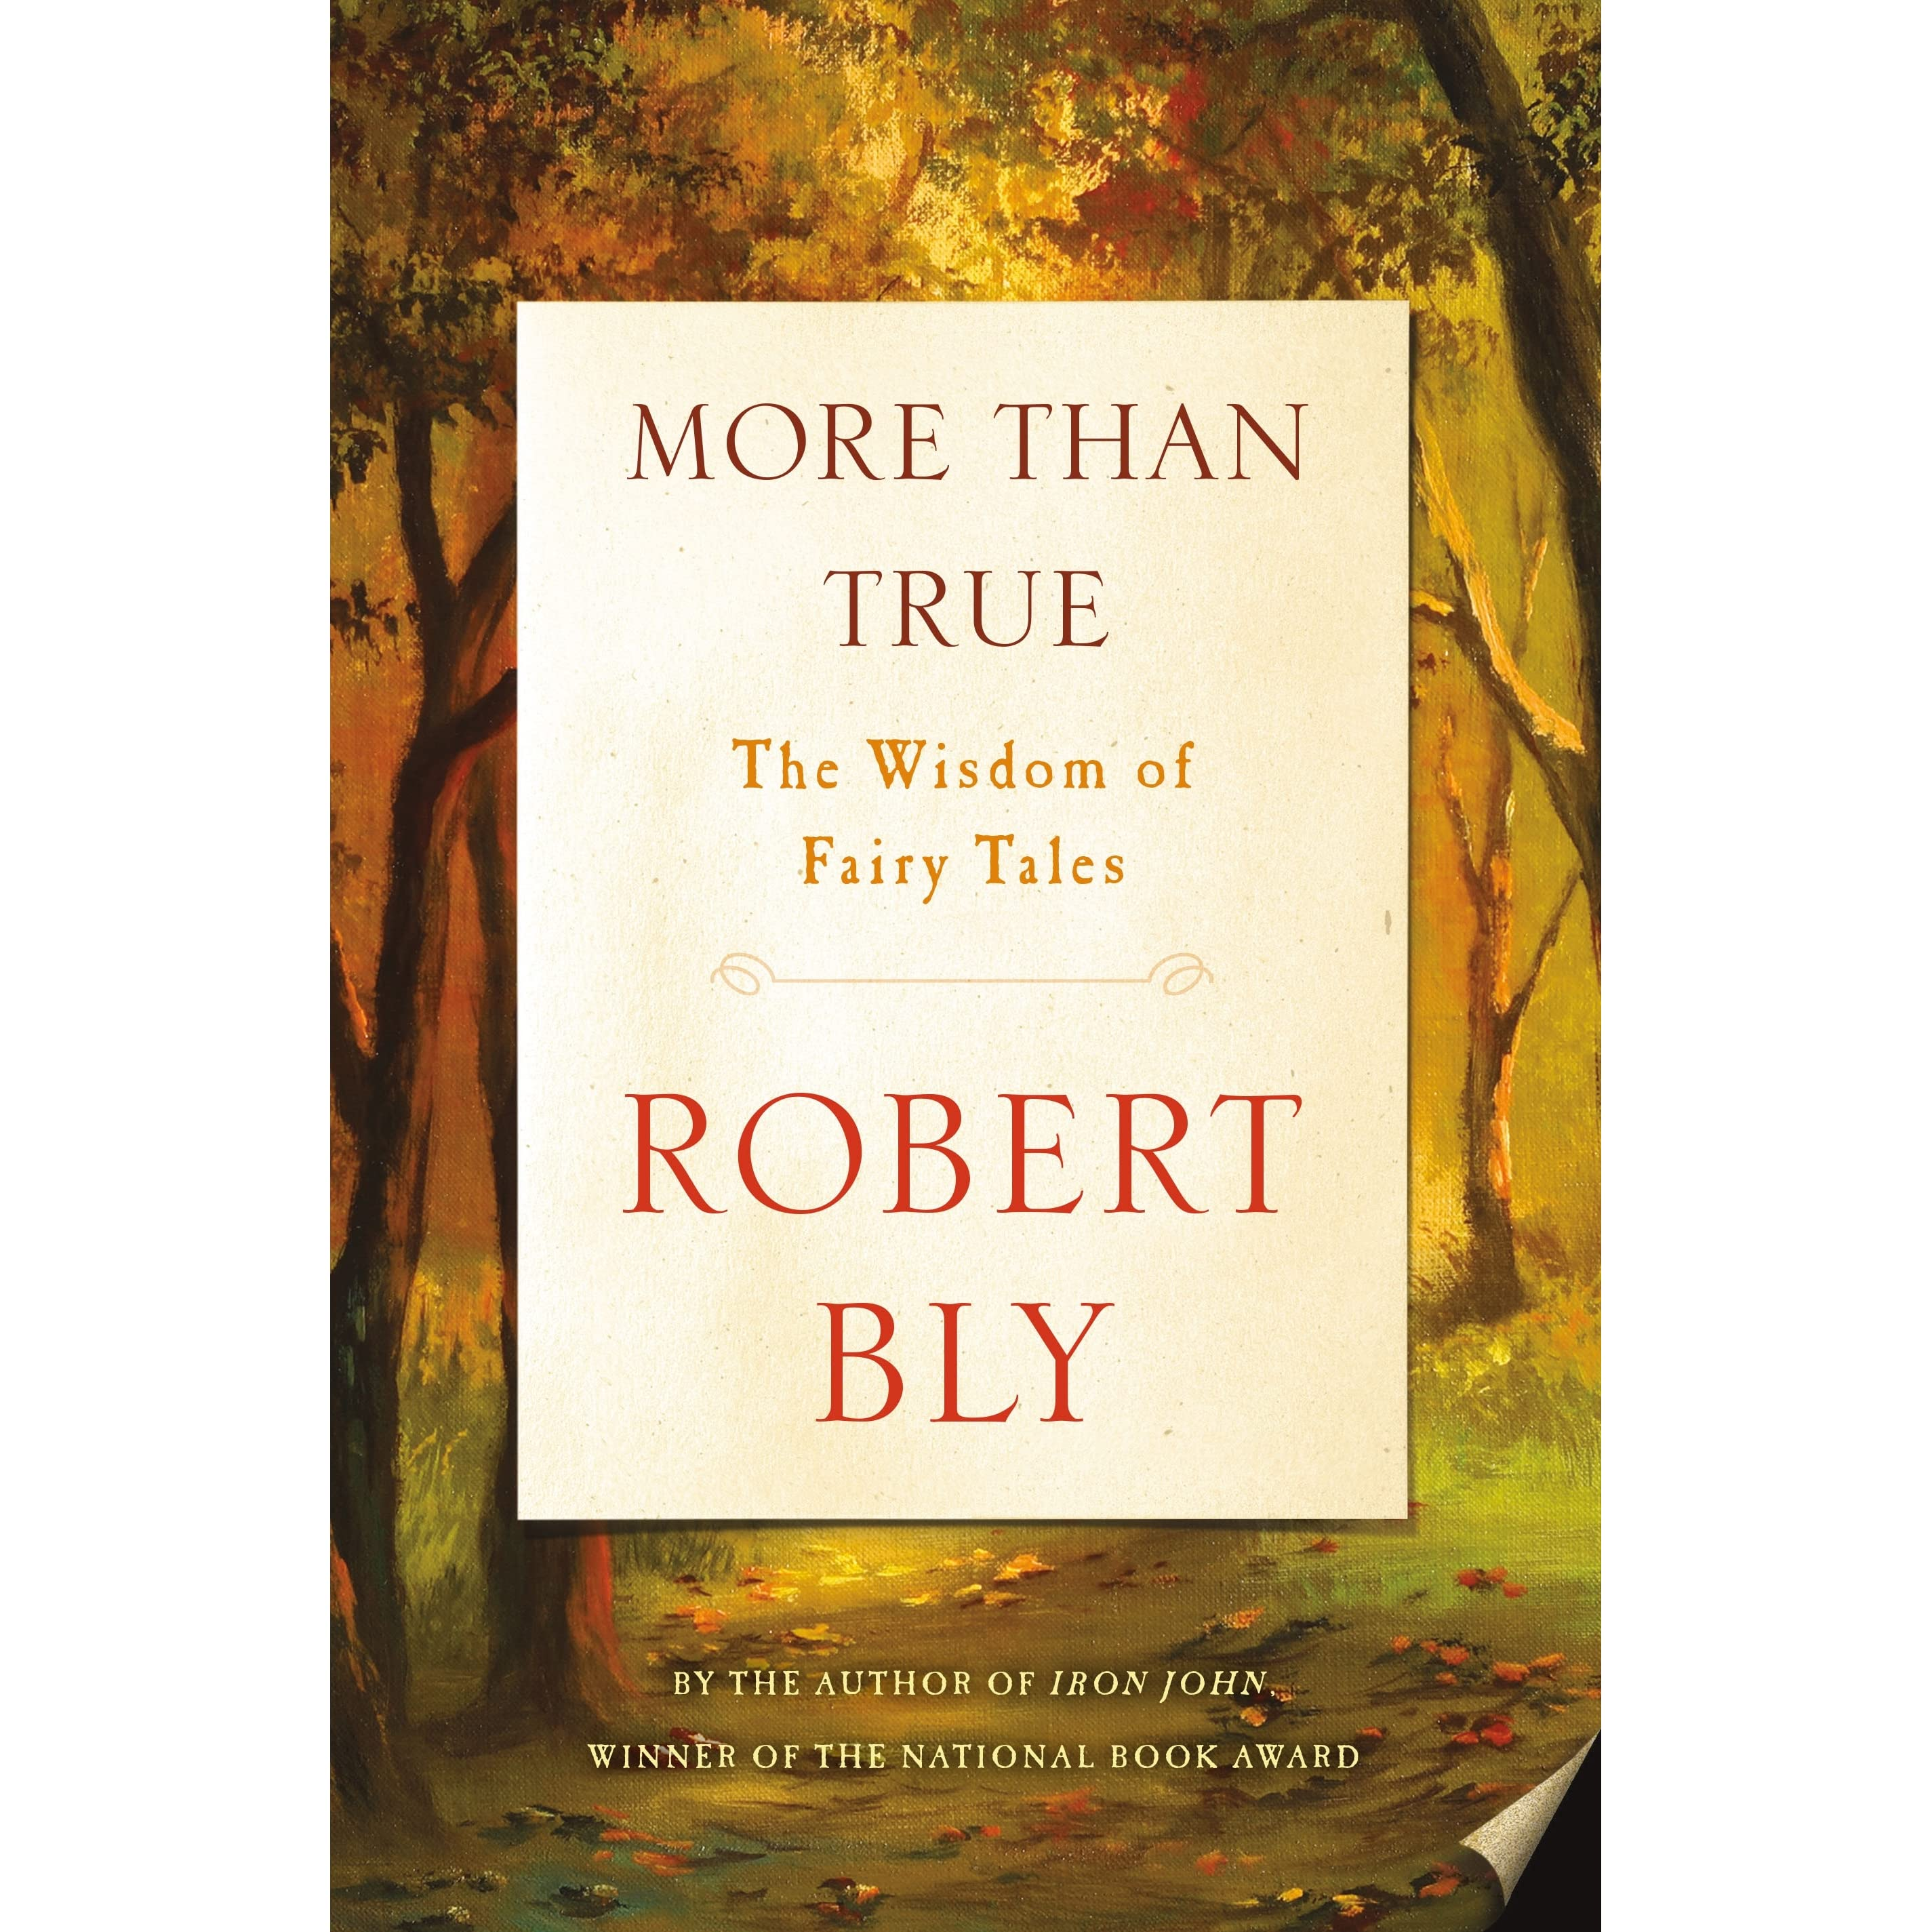 More than true the wisdom of fairy tales by robert bly fandeluxe Choice Image